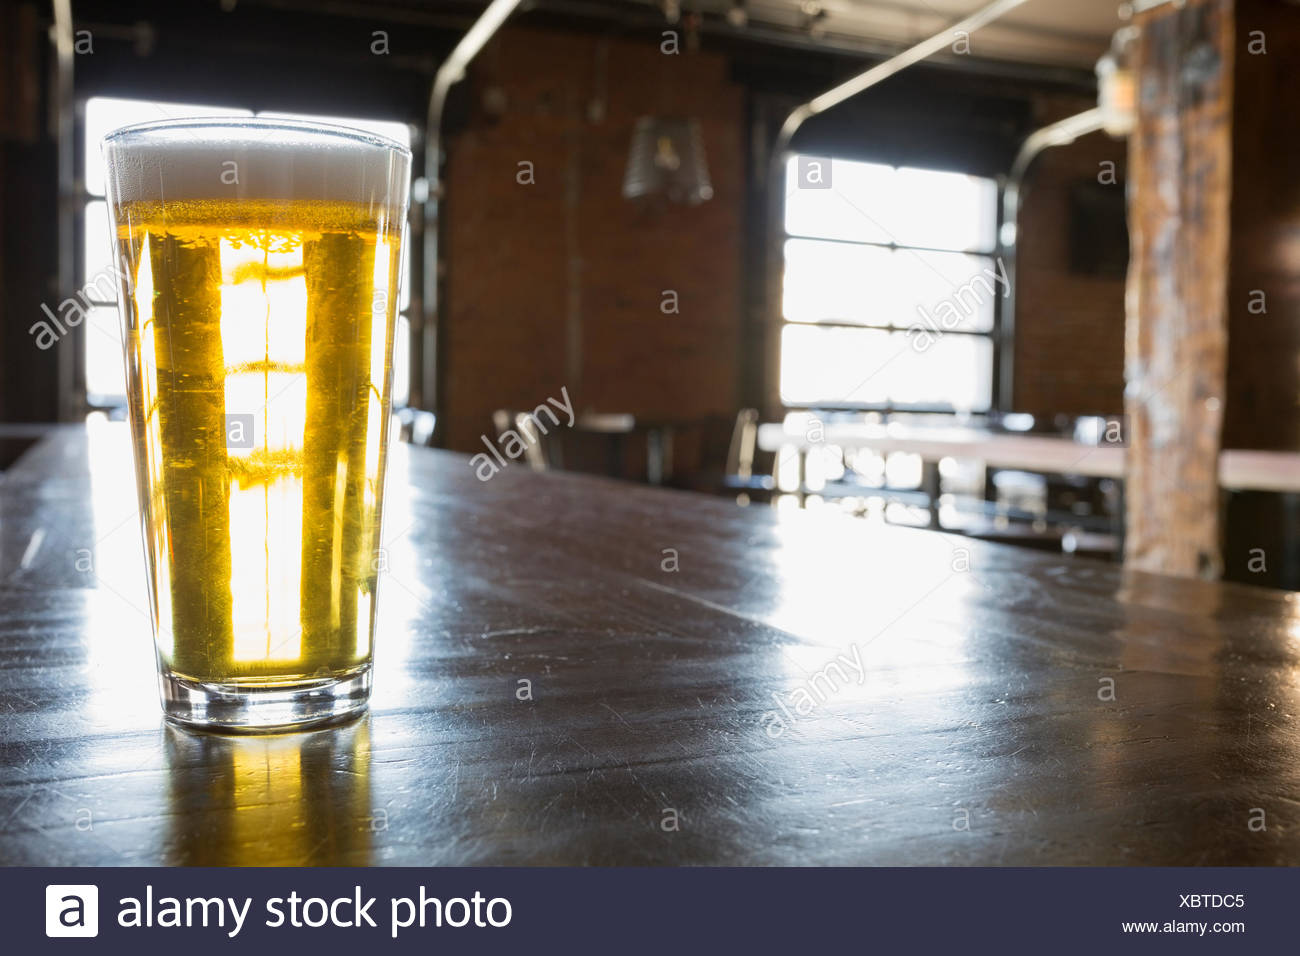 Pint of beer on counter in empty pub - Stock Image